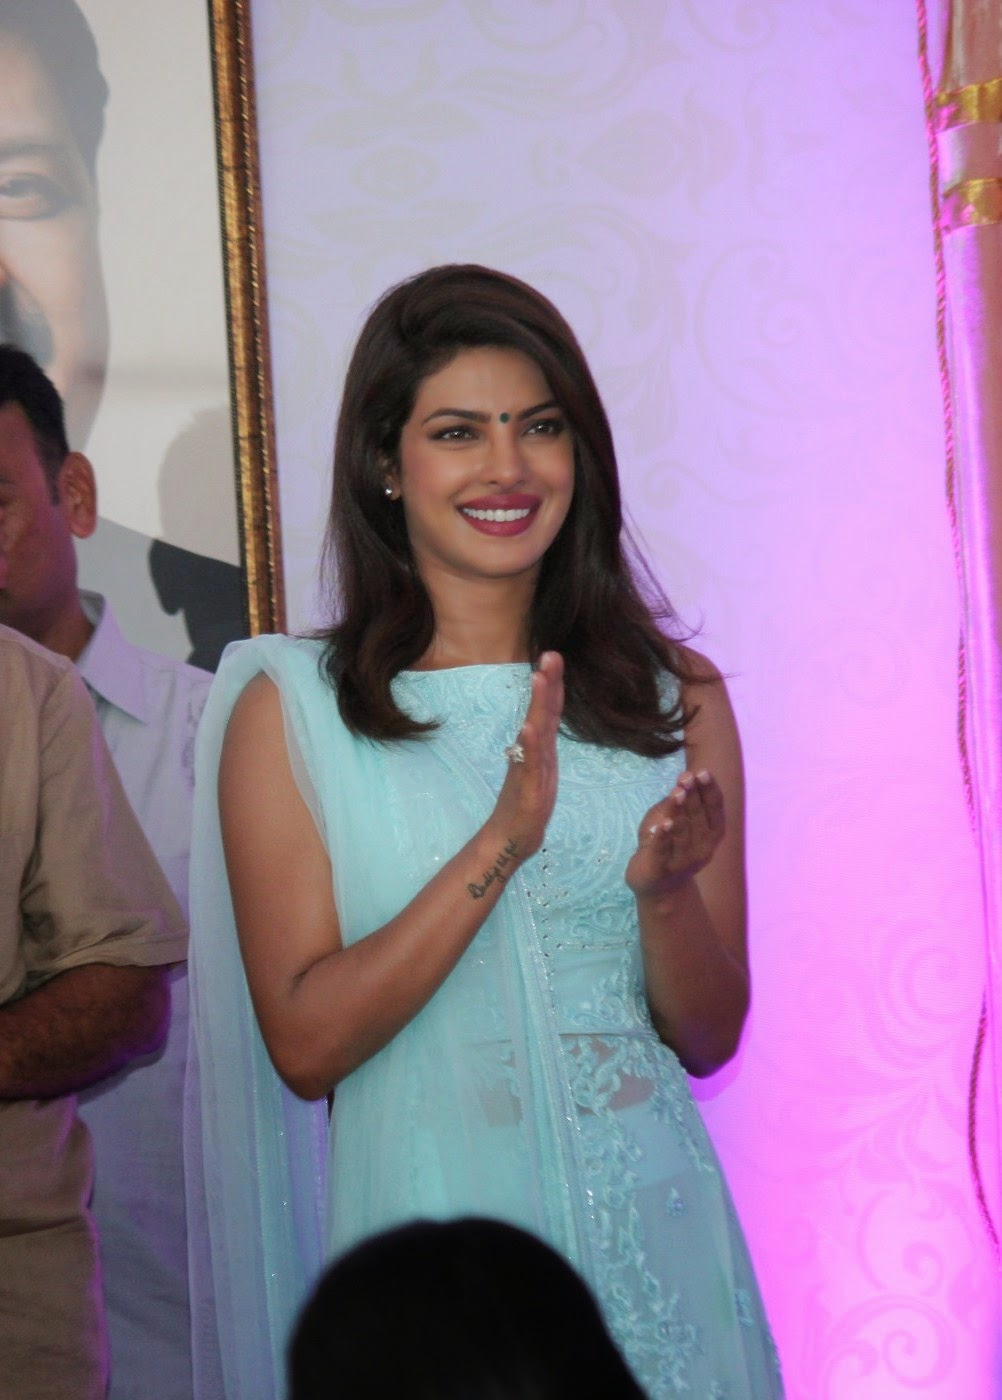 Priyanka Chopra Spicy Smiling Face Closeup Stills